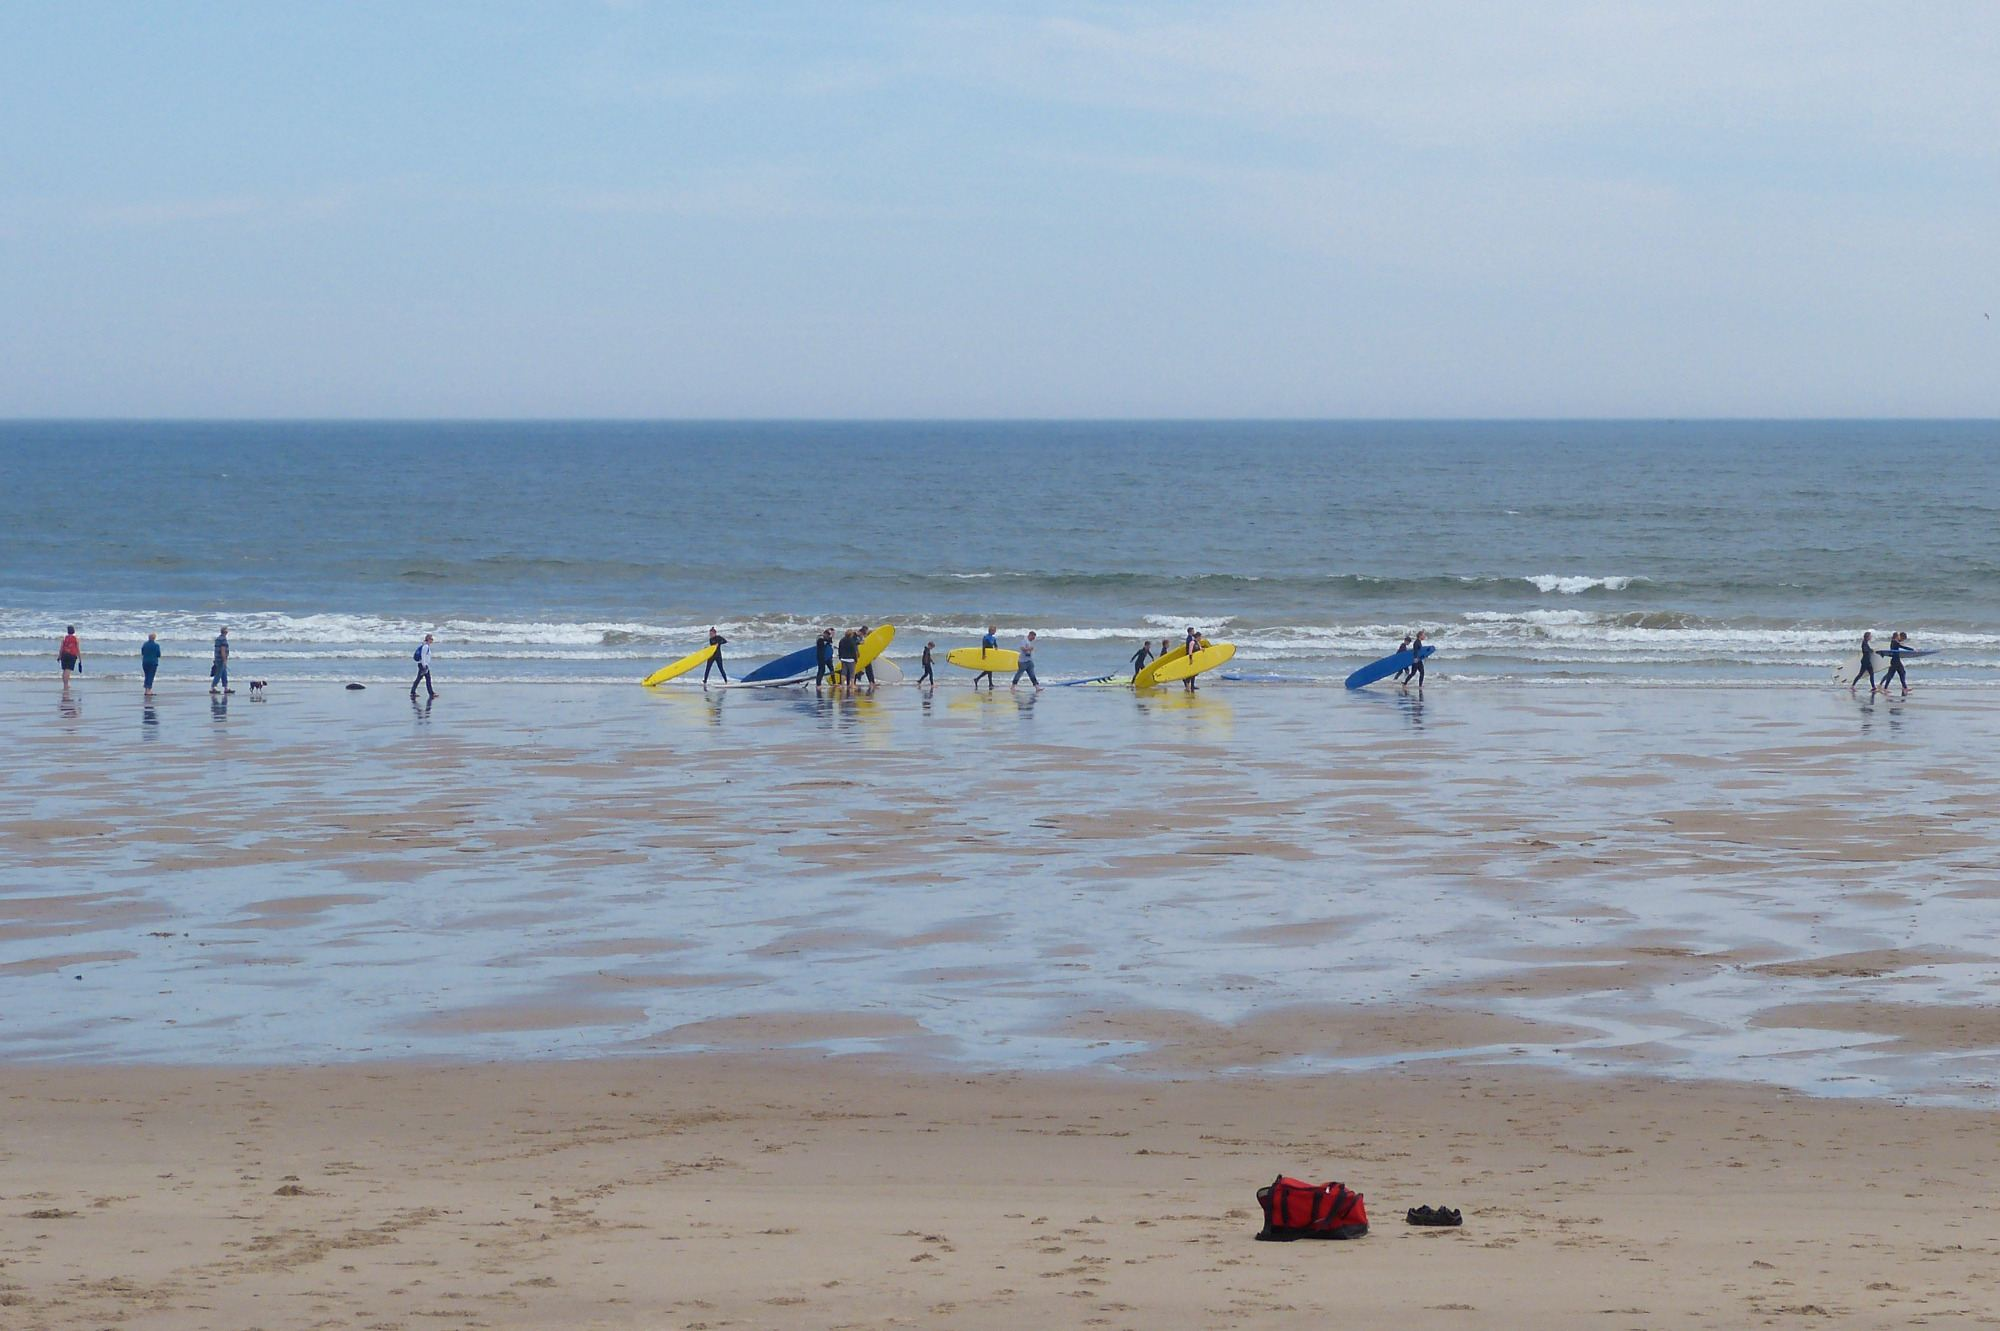 surfers warkworth beach